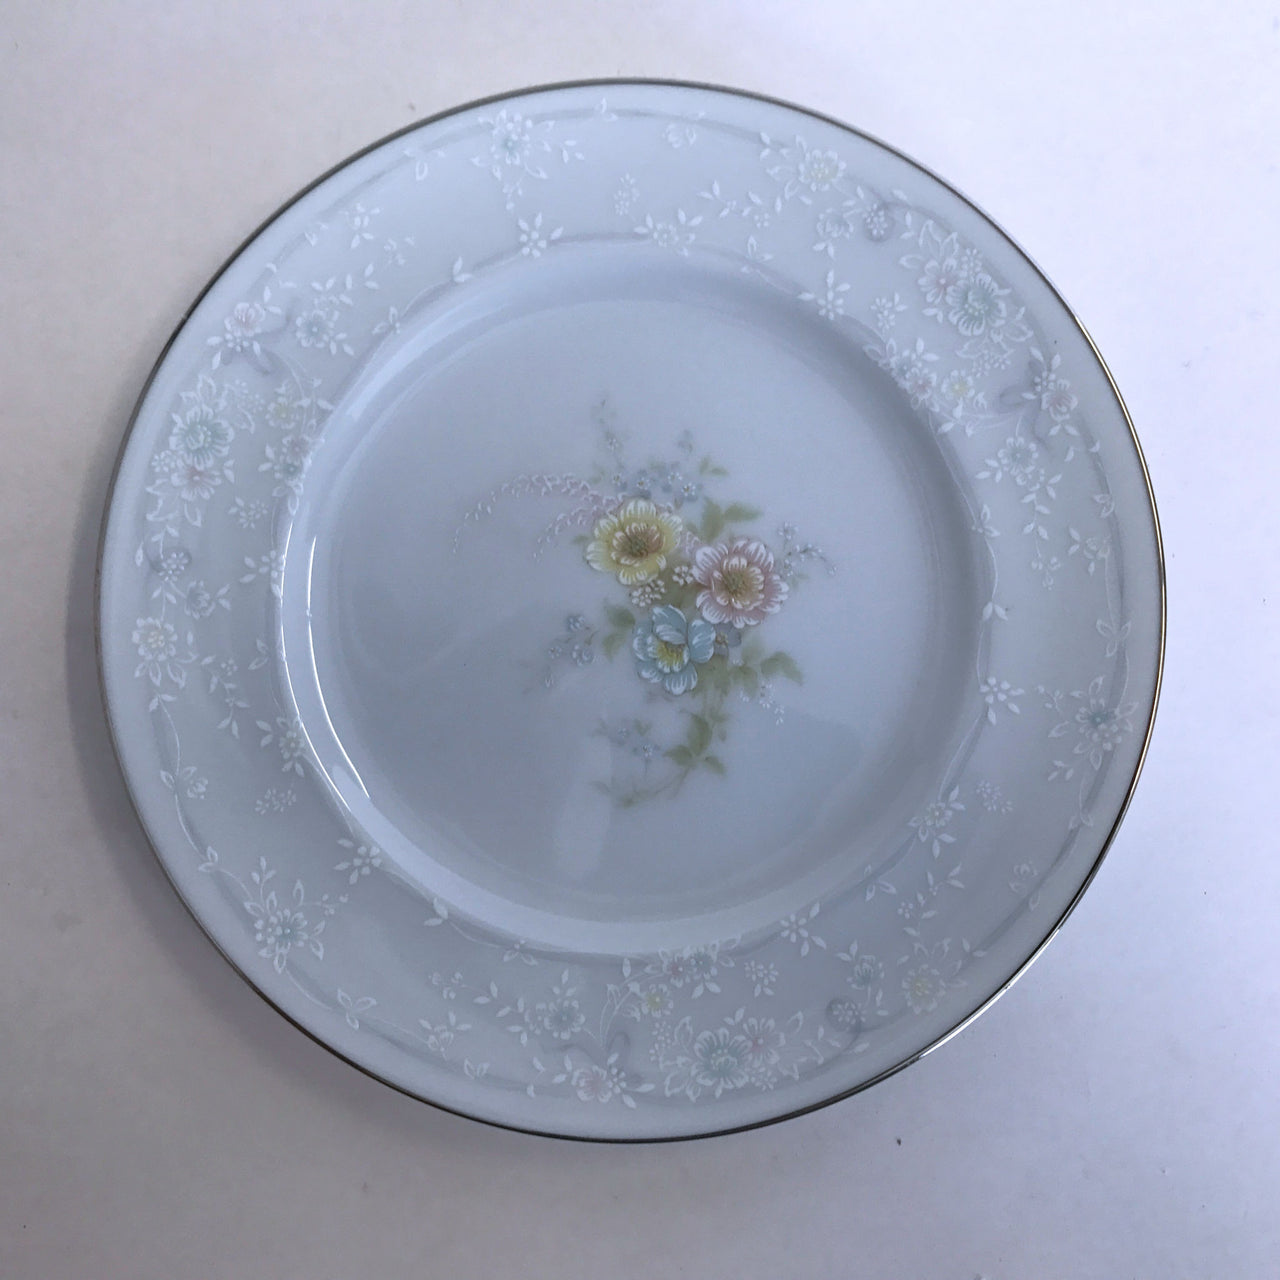 Vintage Noritake Anticipation 2963 Bread Plate Floral Center Flower Rim